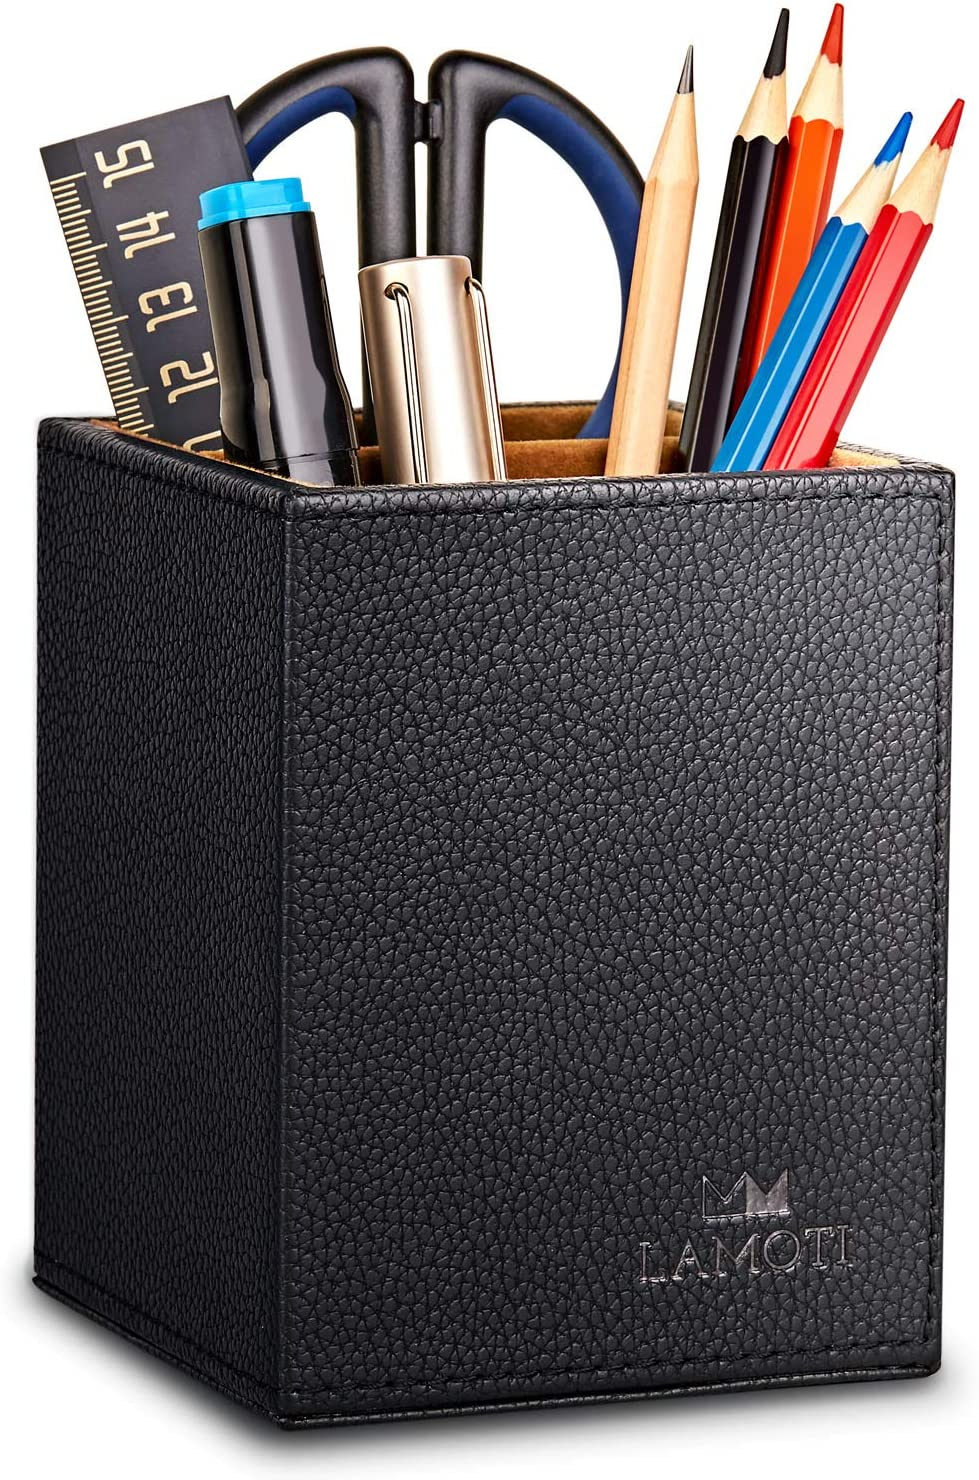 LAMOTI Leather Pen Holder, 2 Compartments Pencil Cup & Organizer for Essential Desktop Supplies, Handcrafted (Black)